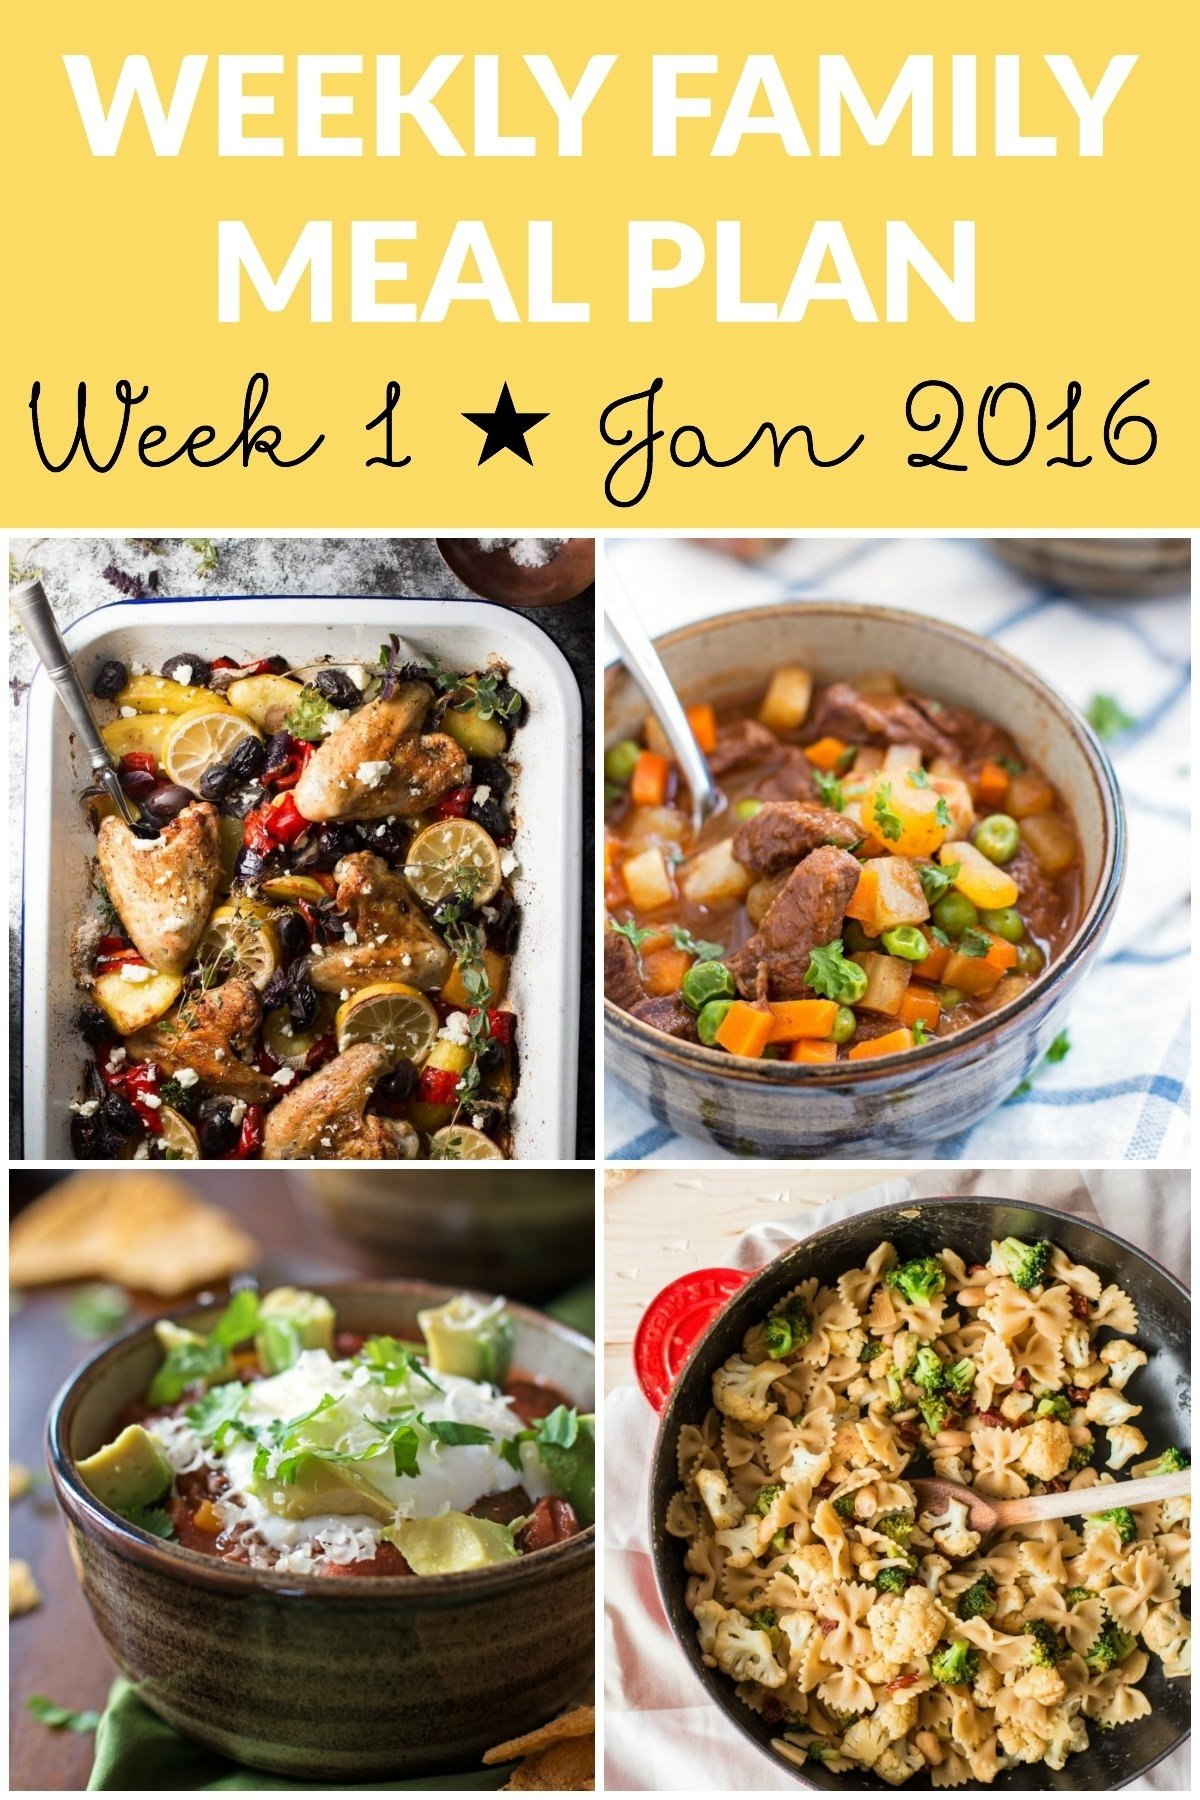 10 Unique Meal Ideas For The Week 25 valentines day dinner ideas recipes for a romantic photos loversiq